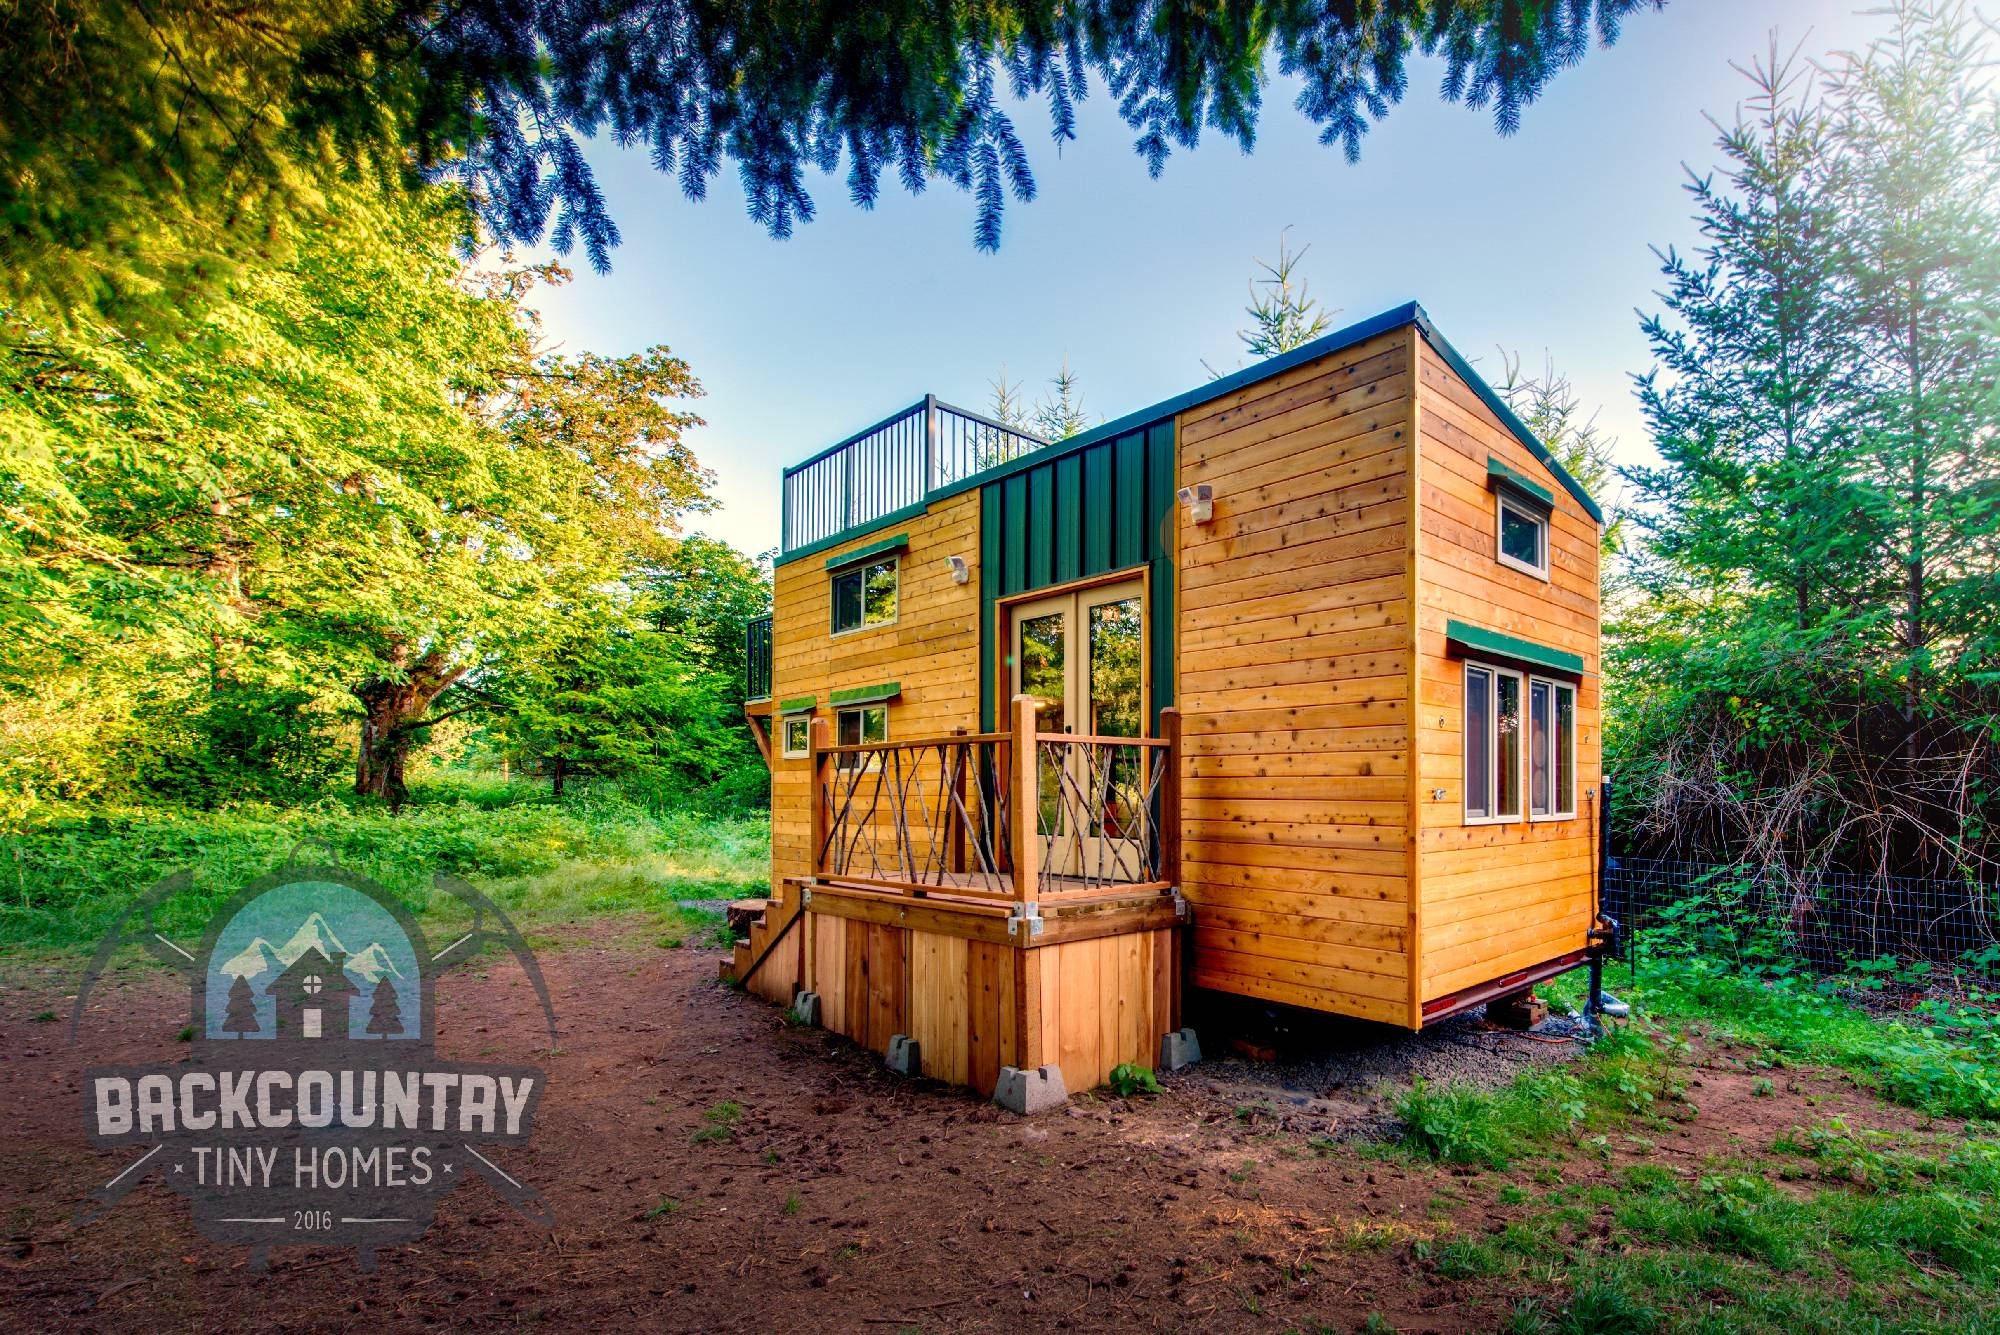 Tiny Home Designs: Luke & Tina's Basecamp Tiny House